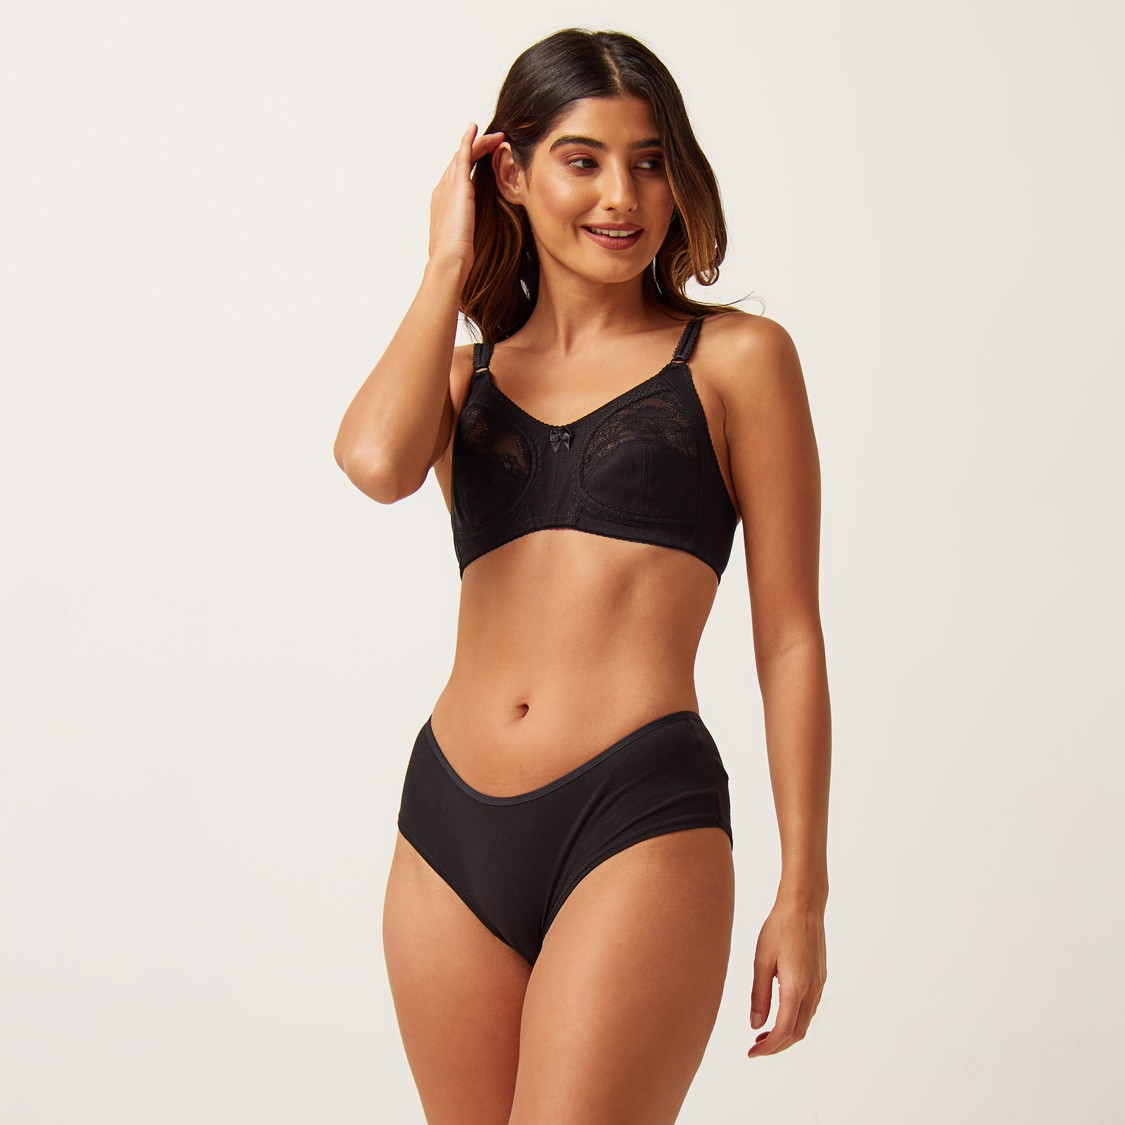 Lace Detail Non-Padded Non-Wired Bra with Hook and Eye Closure